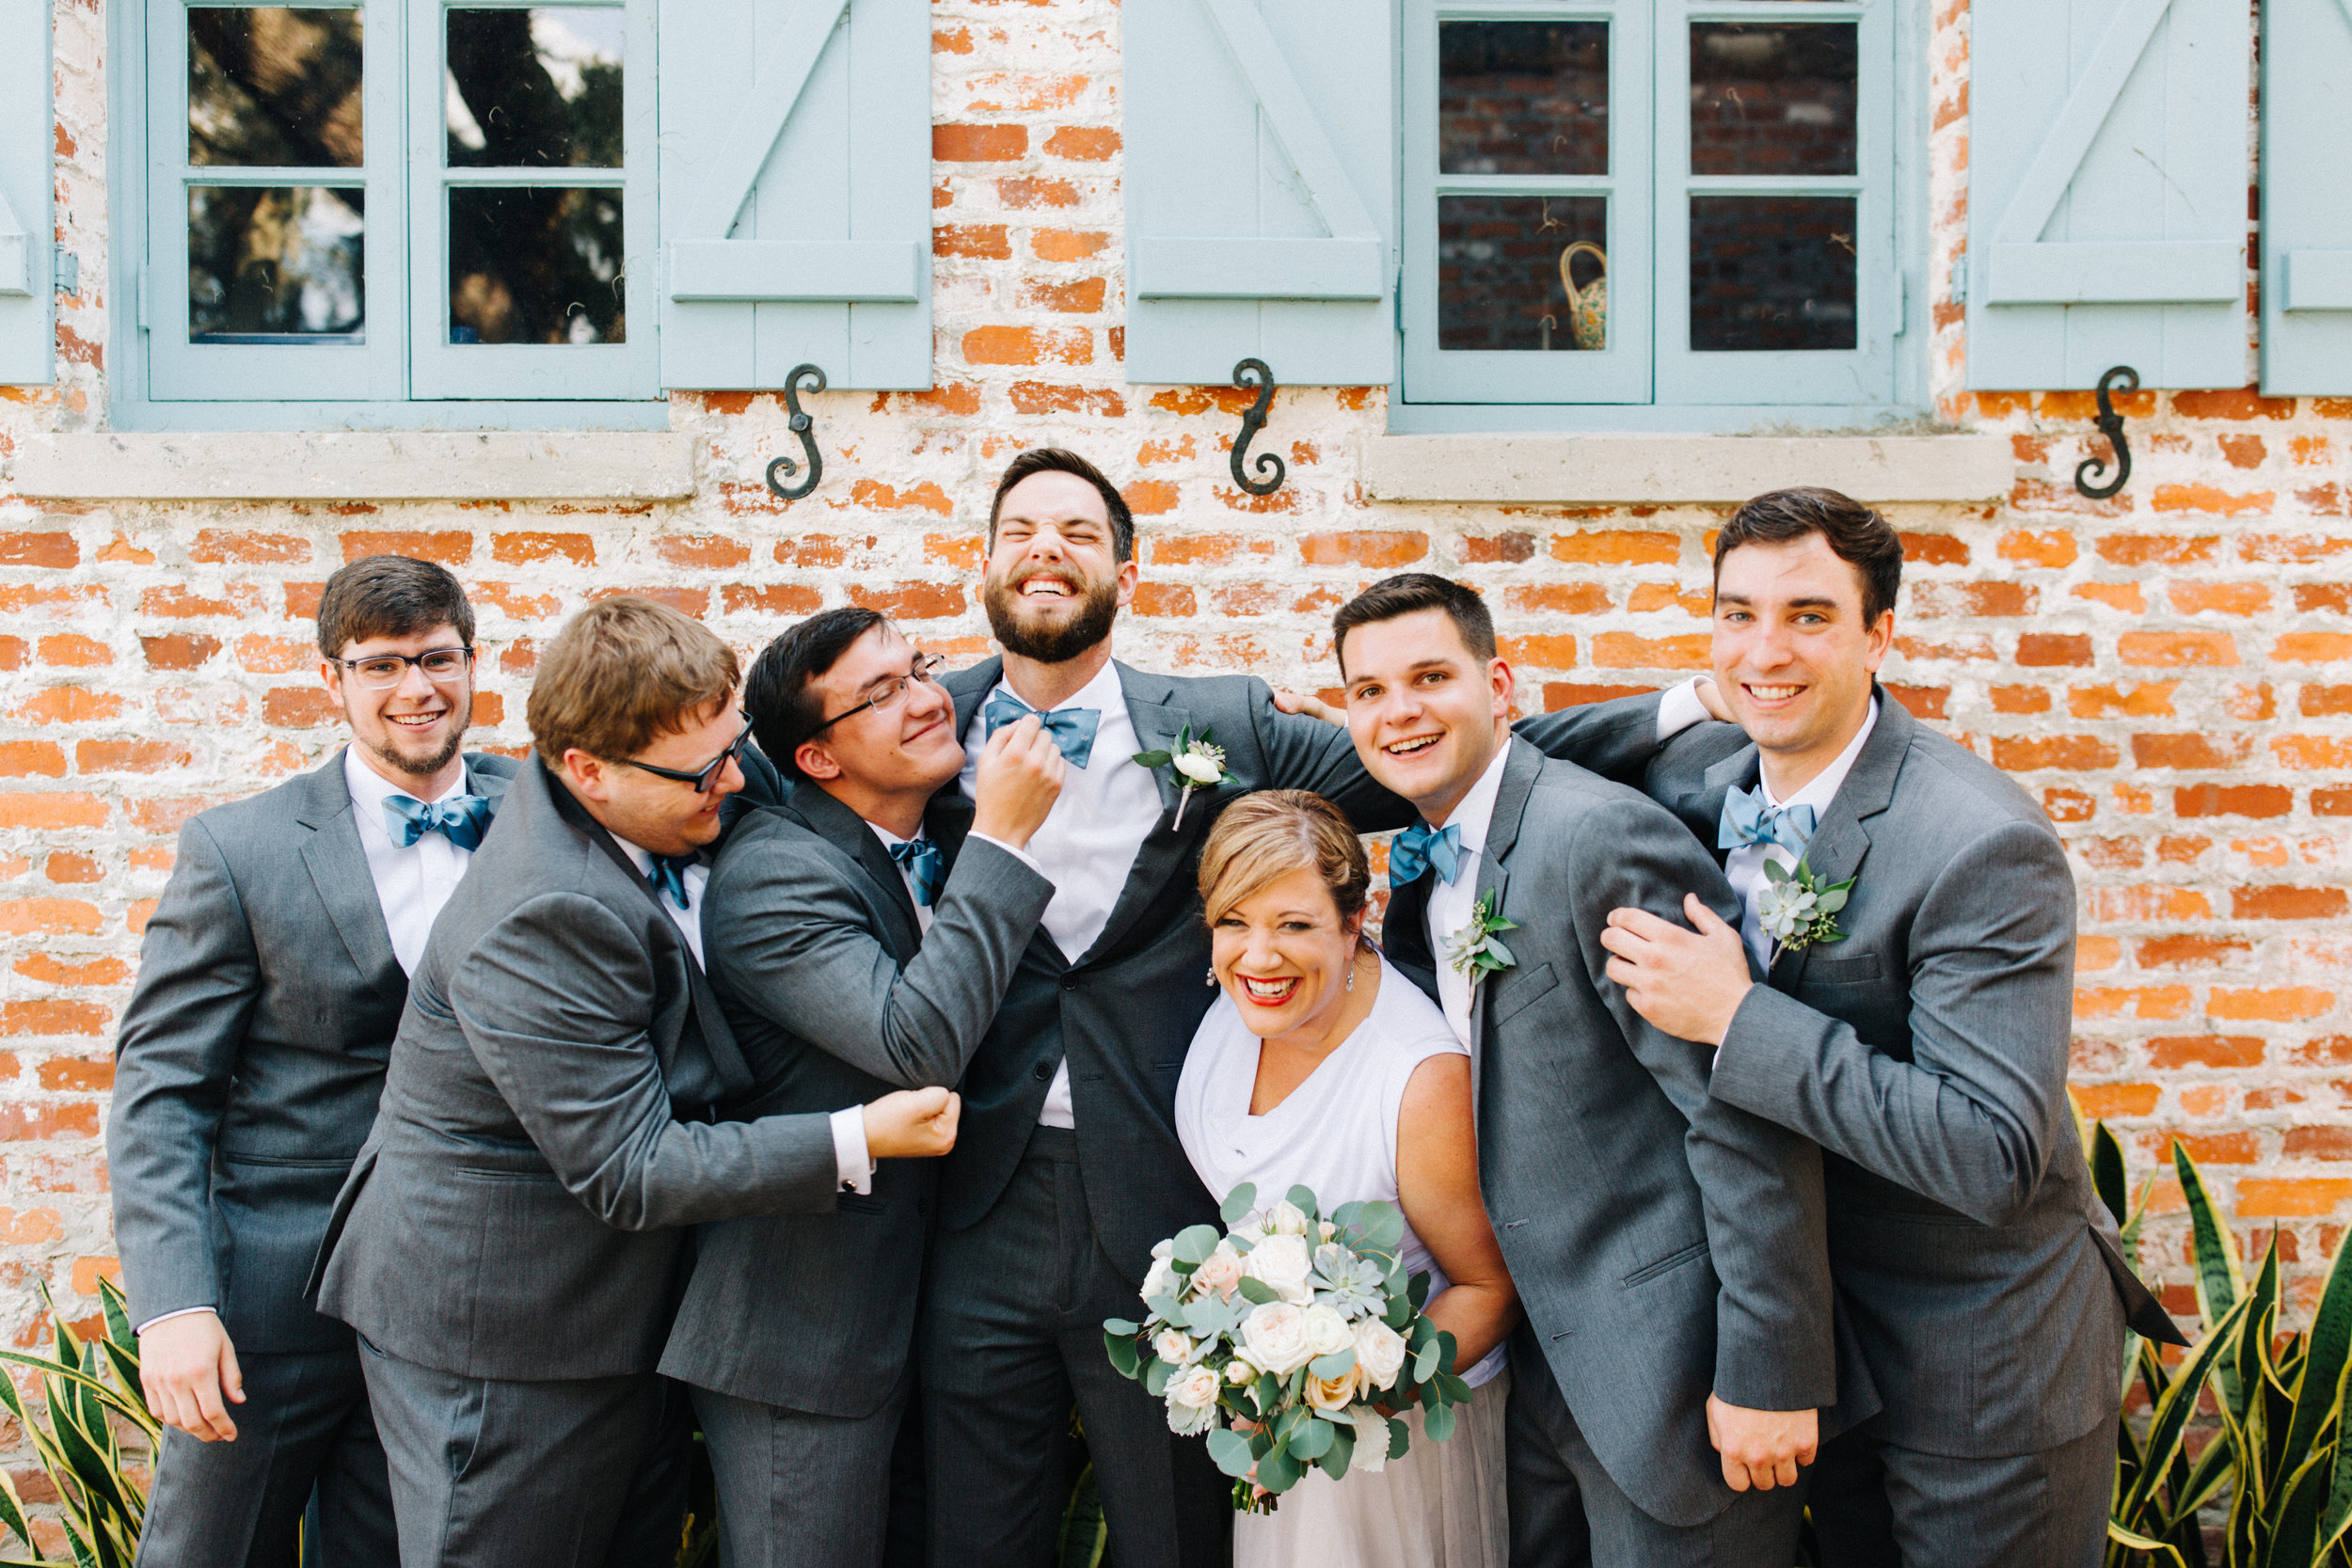 Orlando-Wedding-Photographer_Wedding-at-Casa-Feliz_Kaylin-and-Evan_Orlando-FL0455.jpg